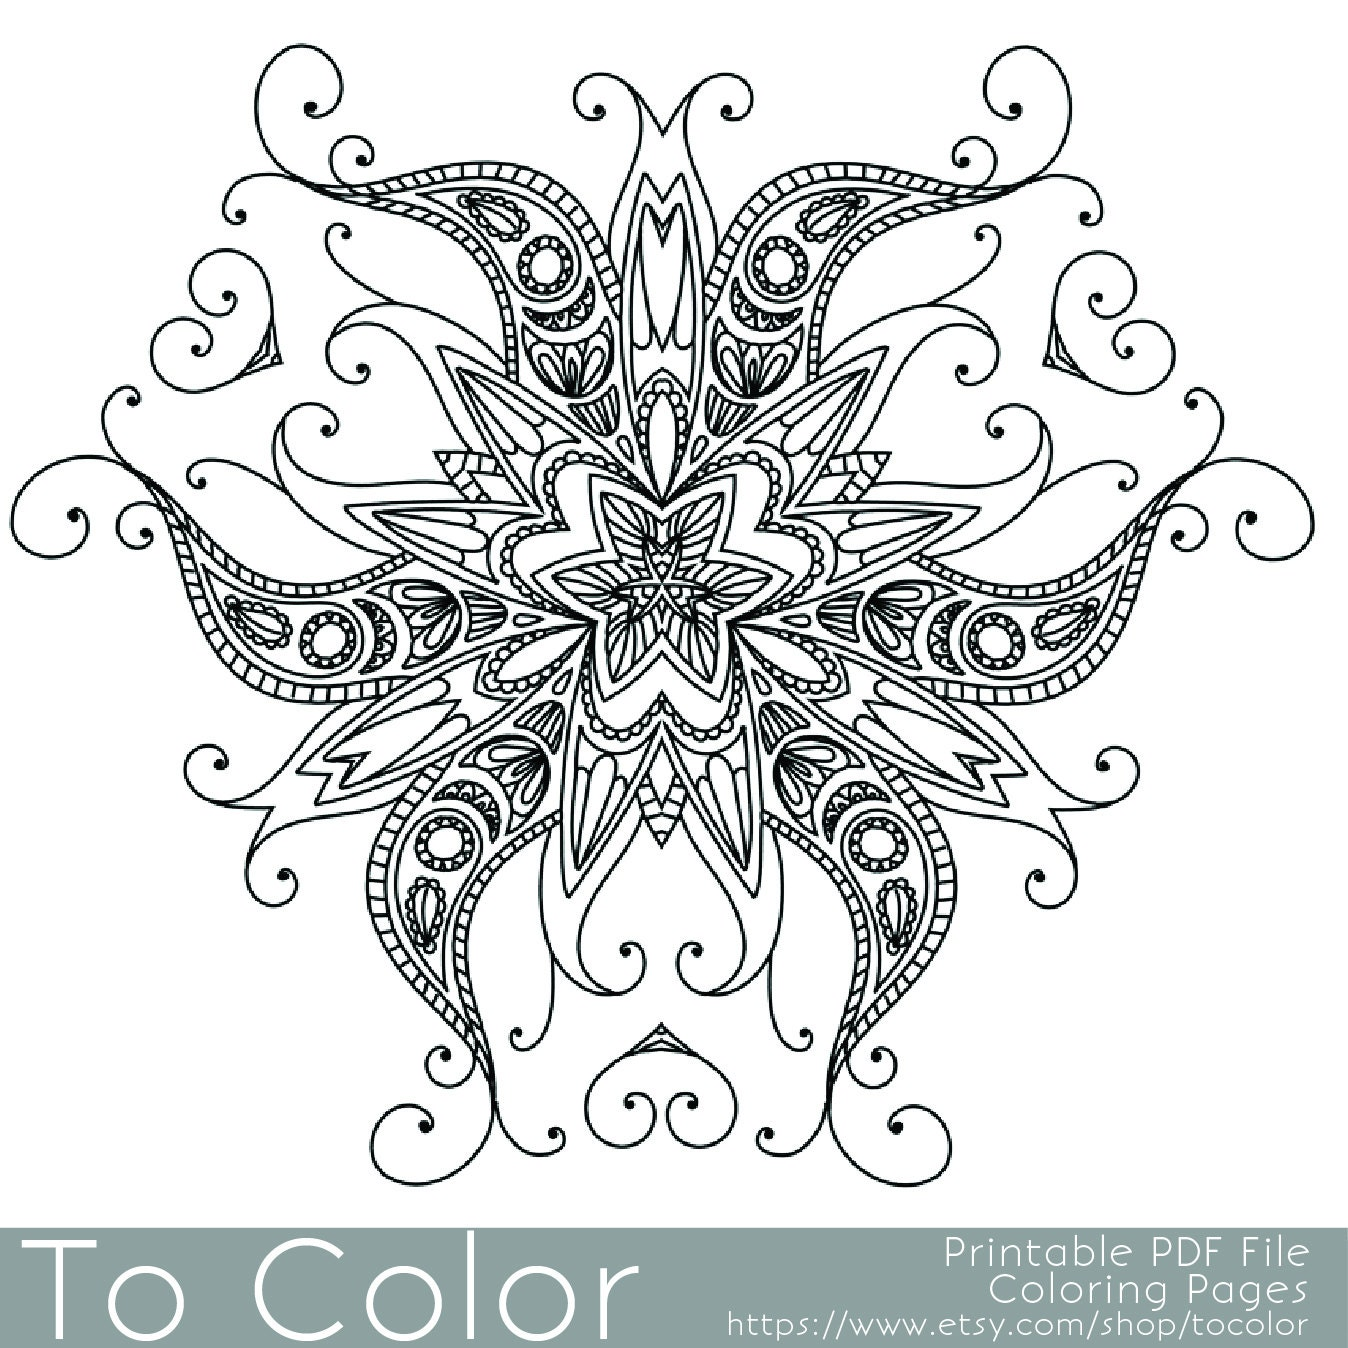 Trust image with intricate coloring pages printable